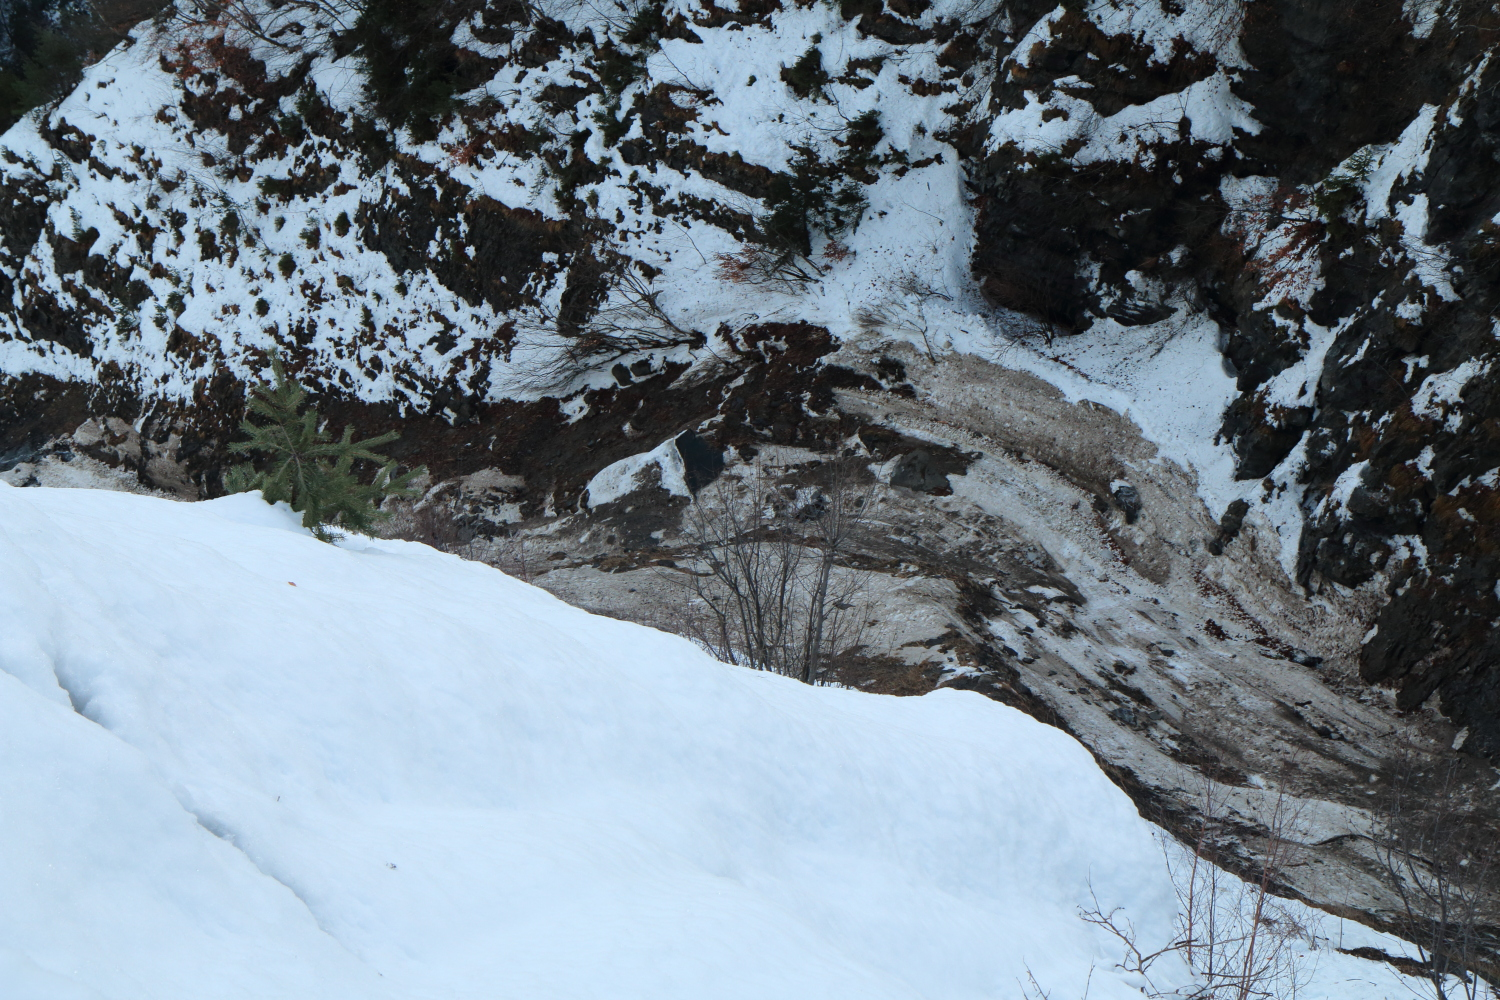 Avalanche Maurienne, secteur Mont Charvin - Mont Charvin, Tunnel des 4 Jarriens - Photo 1